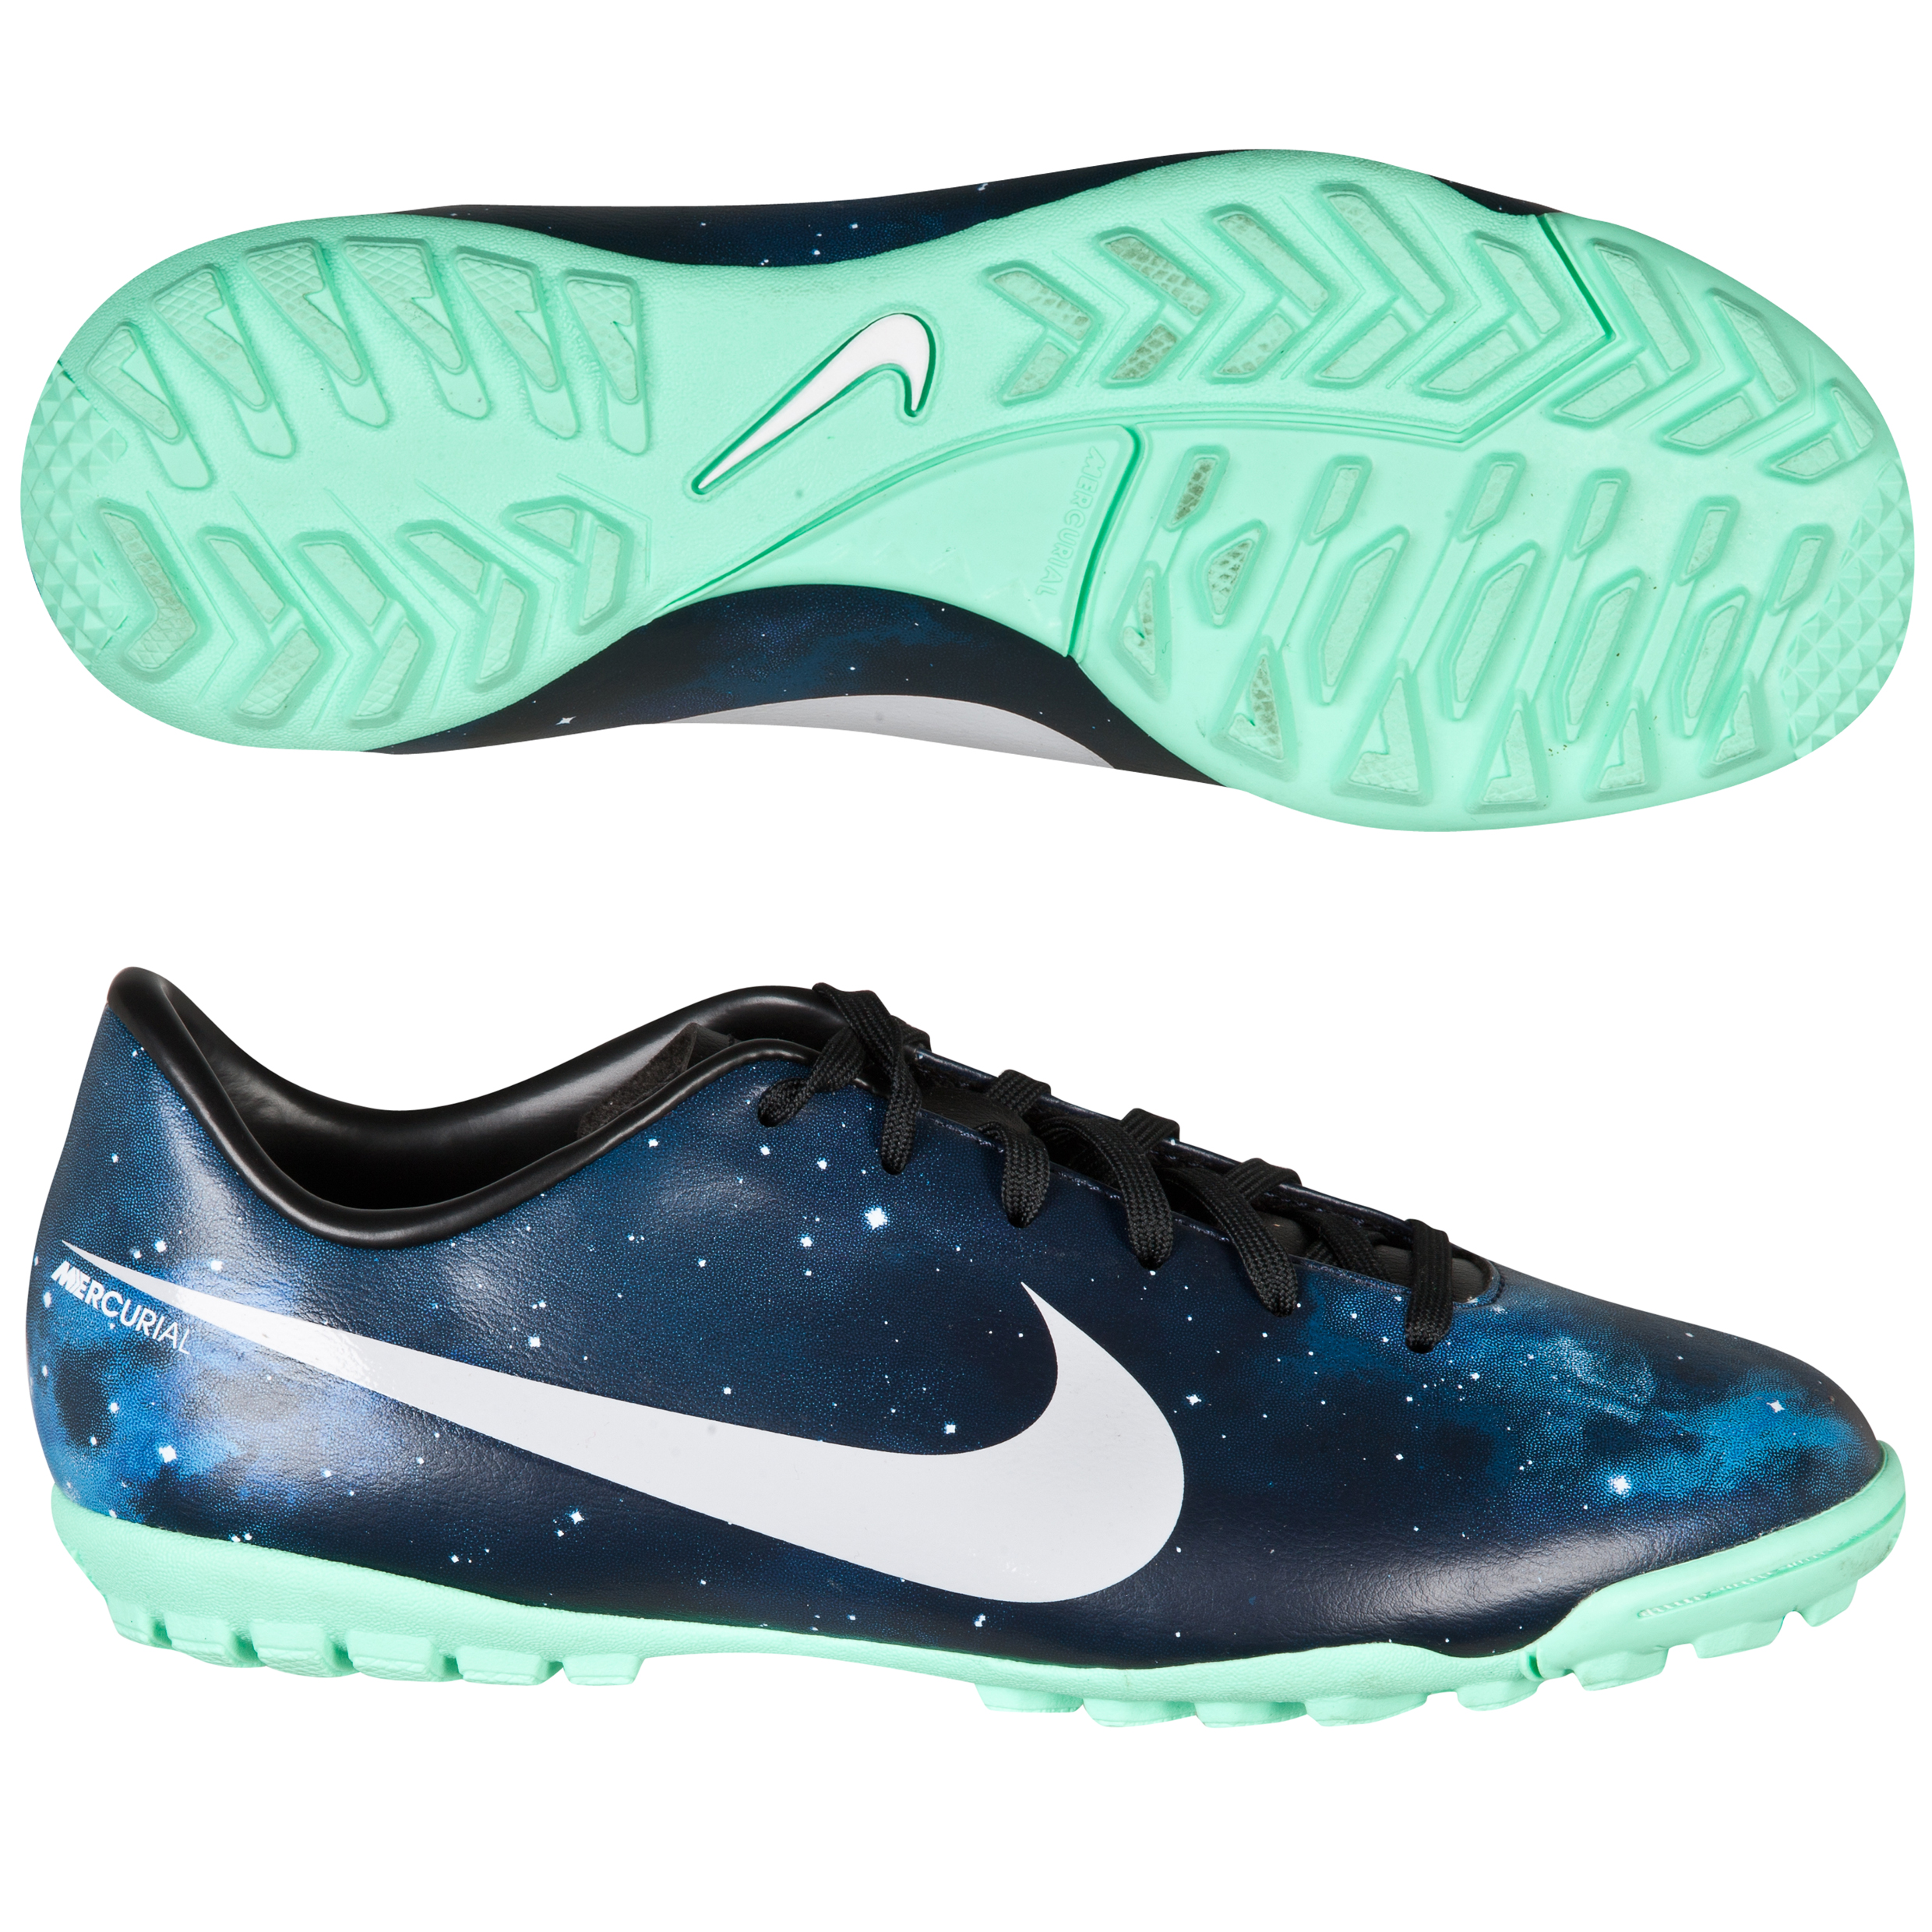 Nike Mercurial Victory IV CR Astroturf Trainers - Kids-Dark Obsidian/Metallic Plantinum/Green Glow/Black Navy